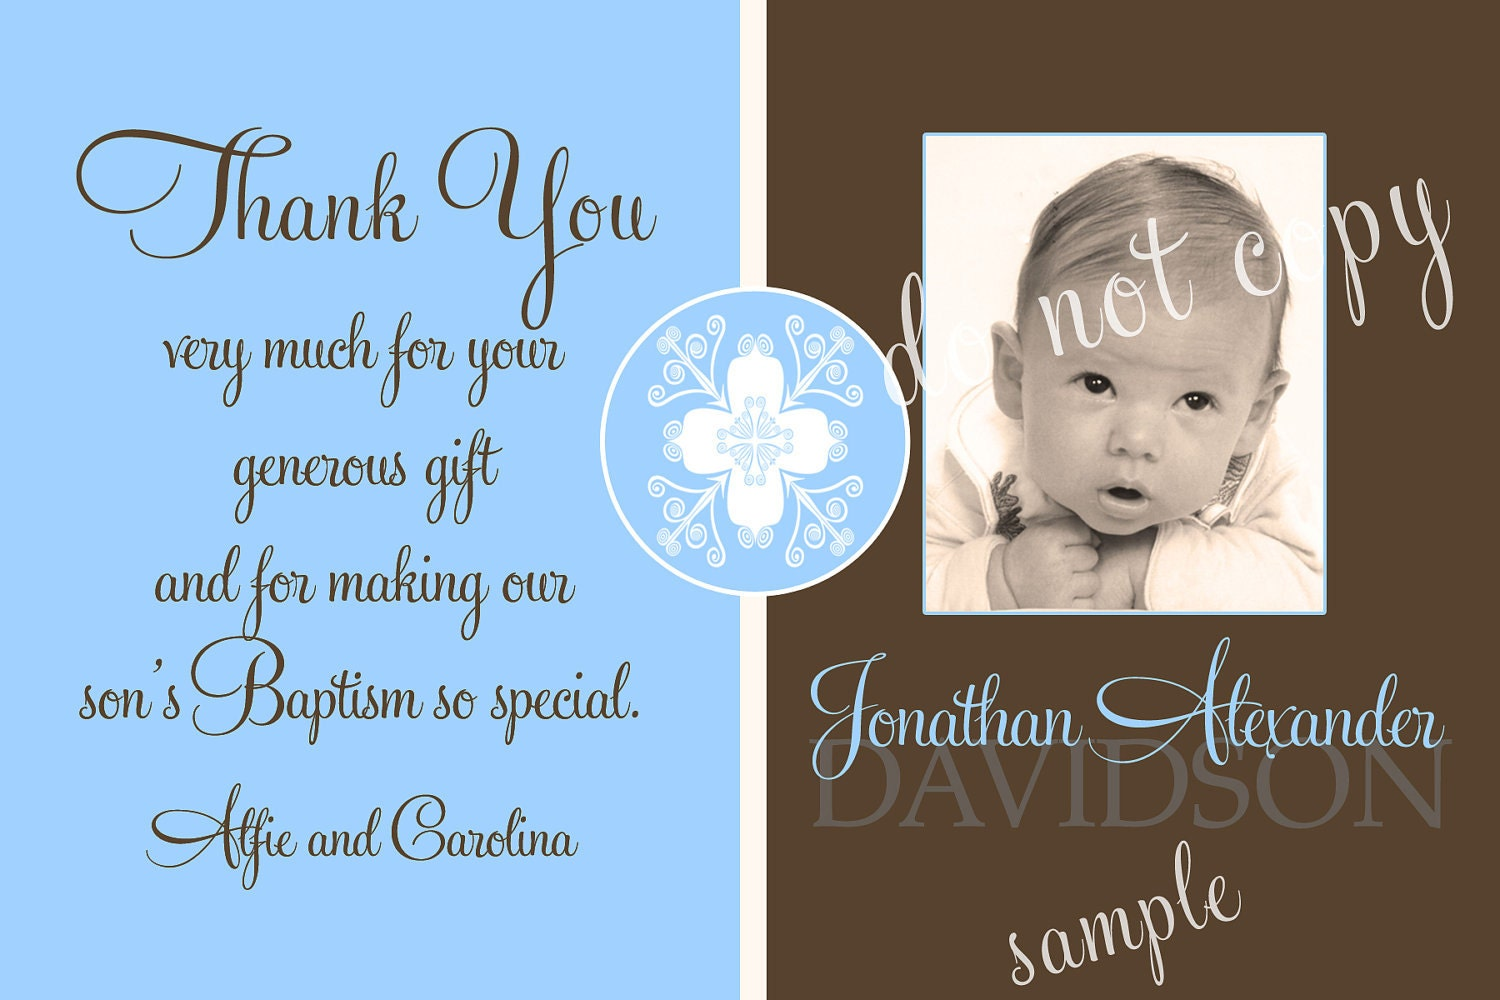 Christening Thank You Cards Wording images